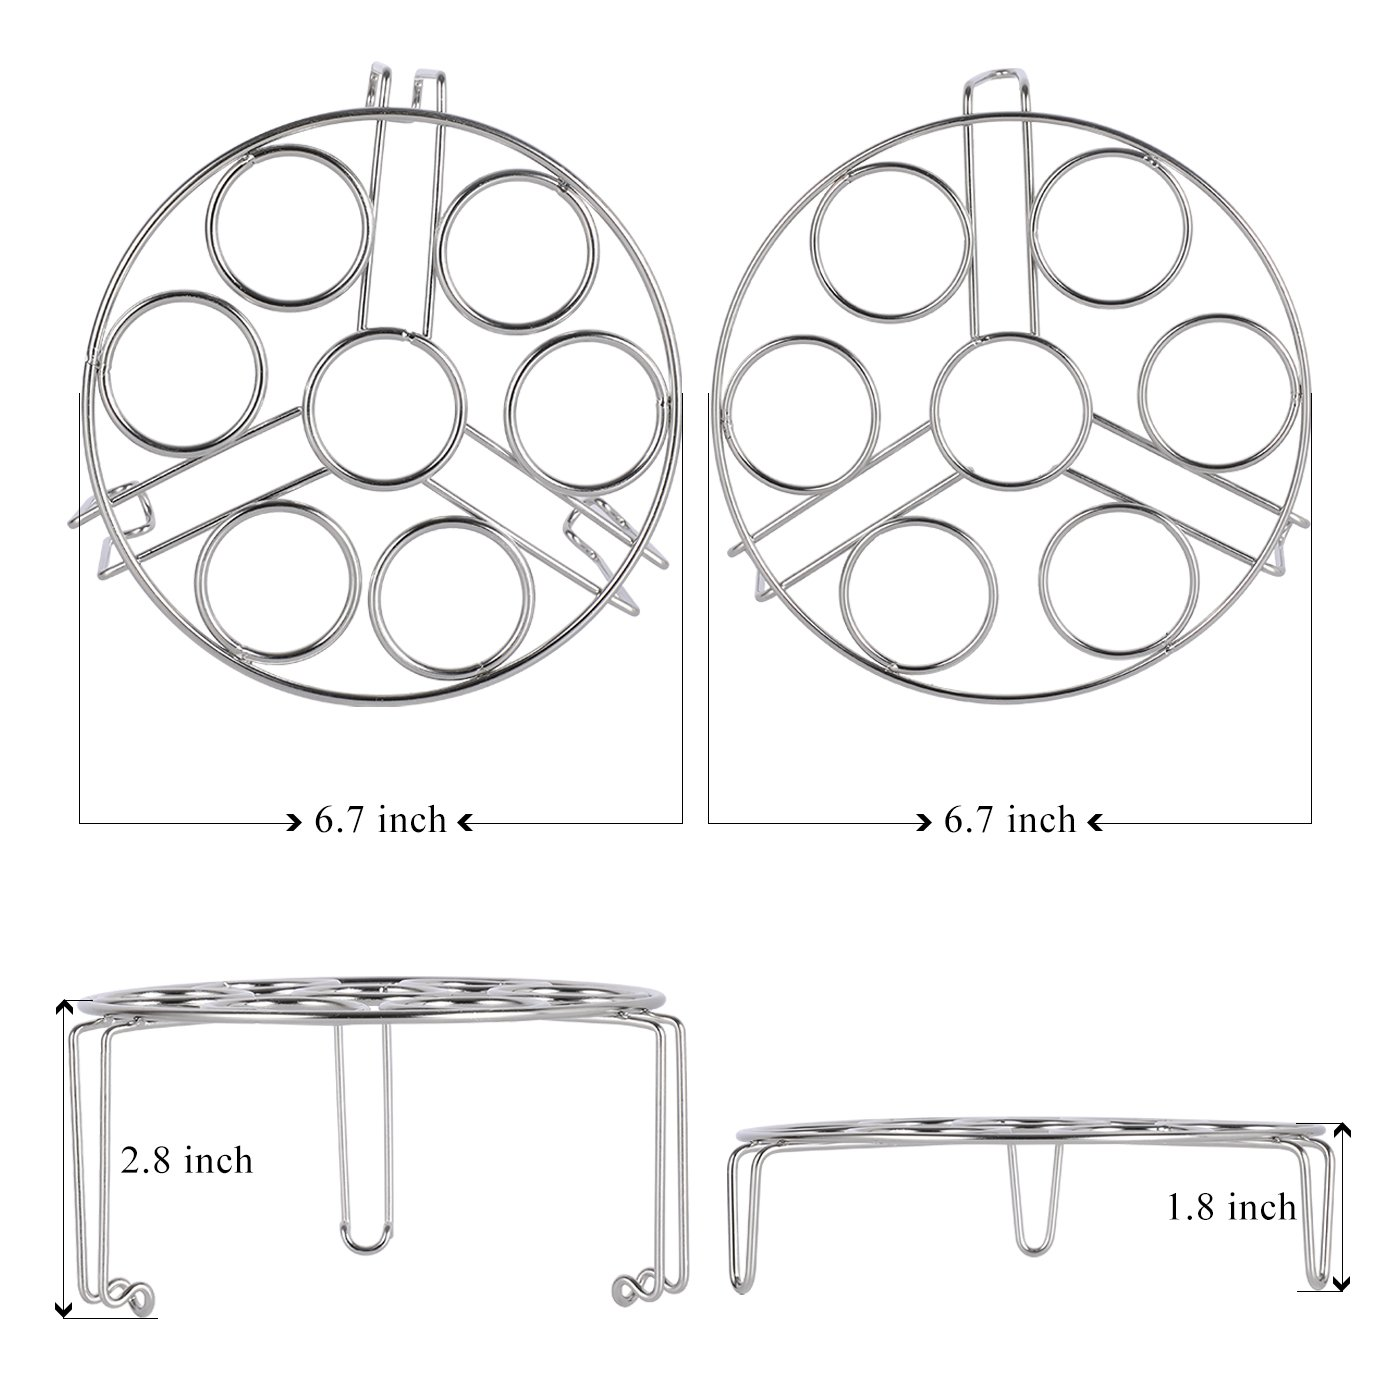 Aozita Stackable Egg Steamer Rack Trivet for Instant Pot Accessories - Fits 5,6,8 qt Pressure Cooker - 2 Pack Stainless Steel Multipurpose Rack by Aozita (Image #2)